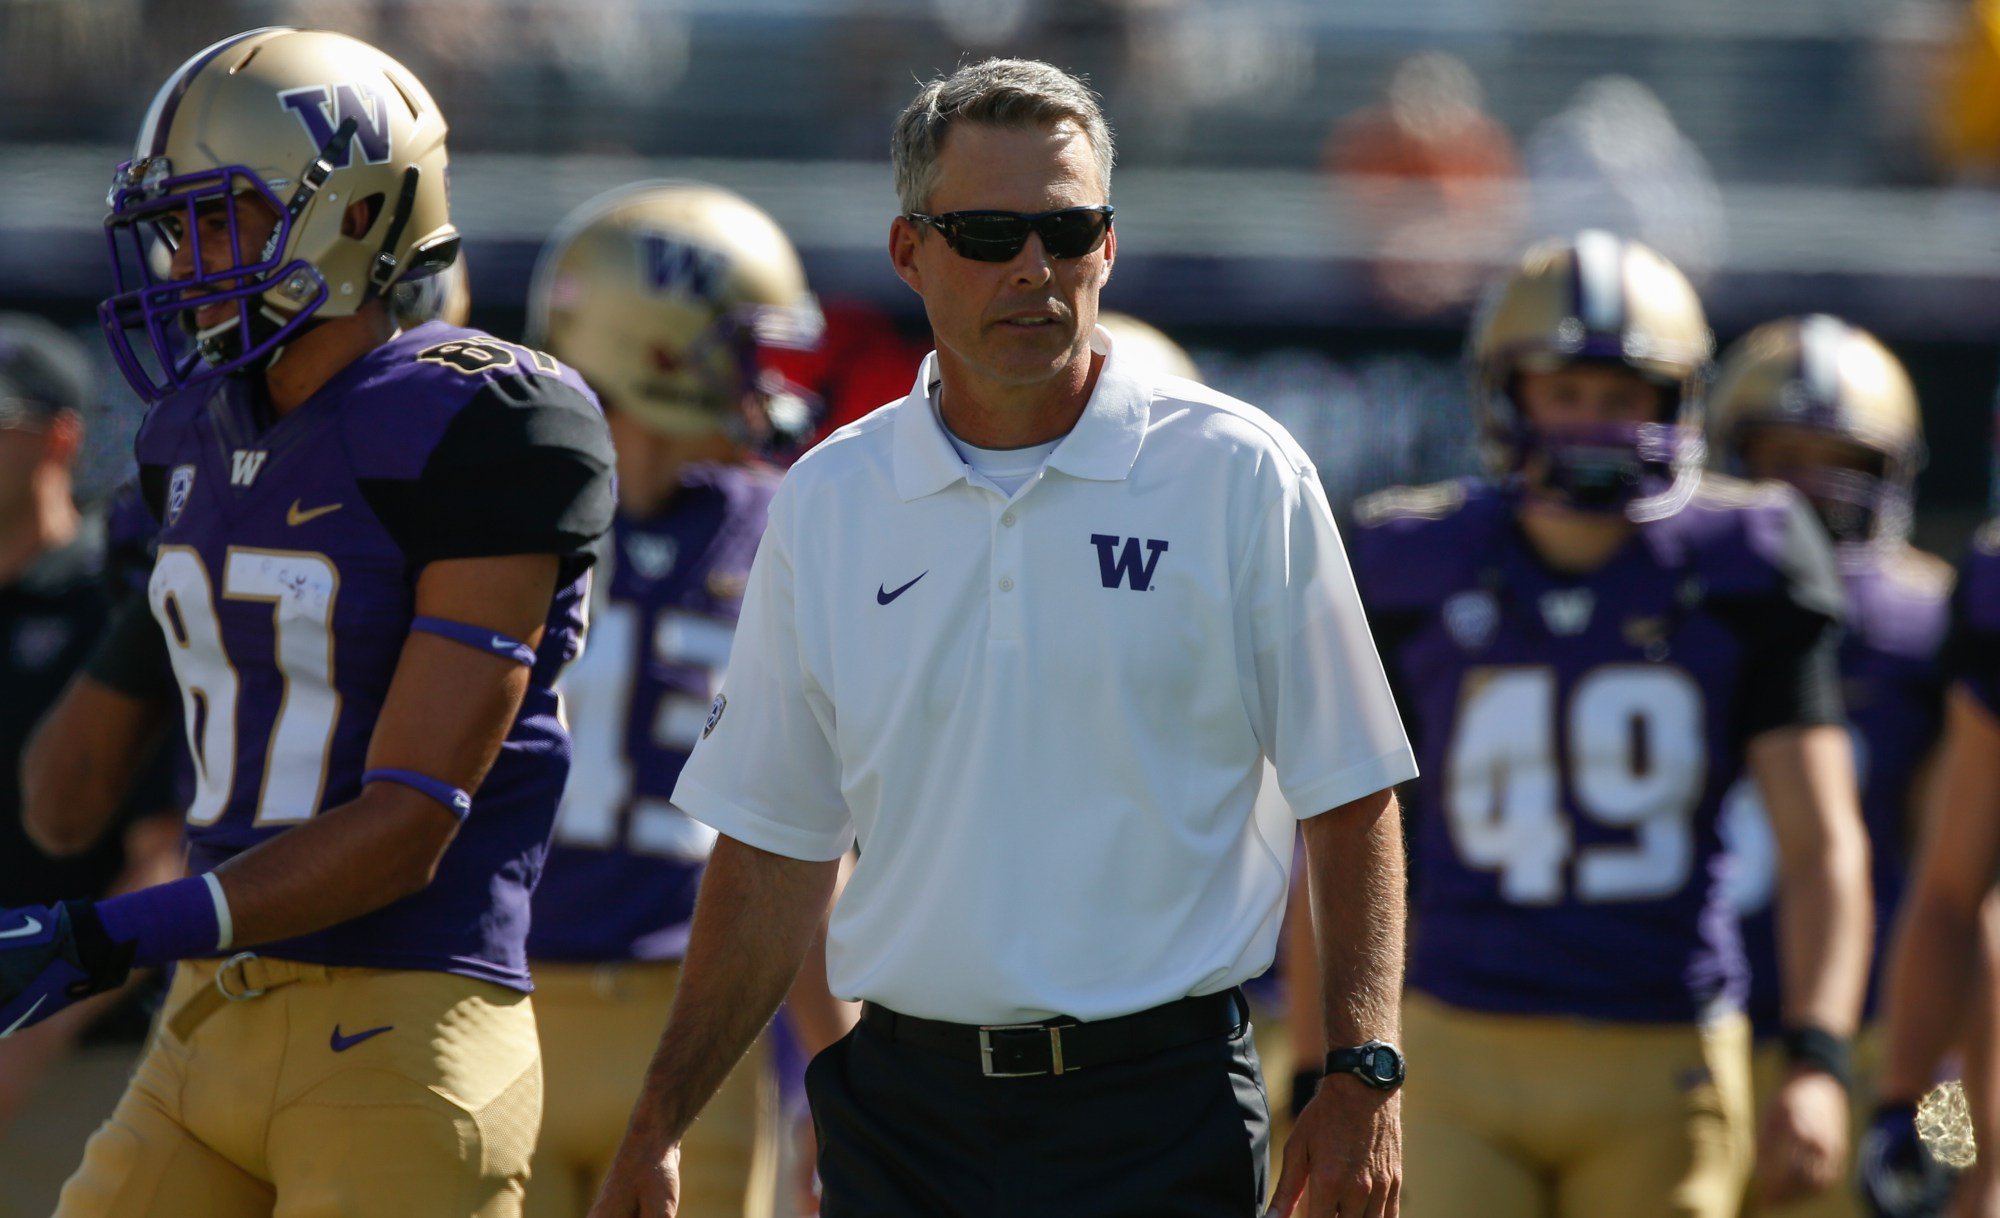 The Huskies Haul in a New Recruiting Class